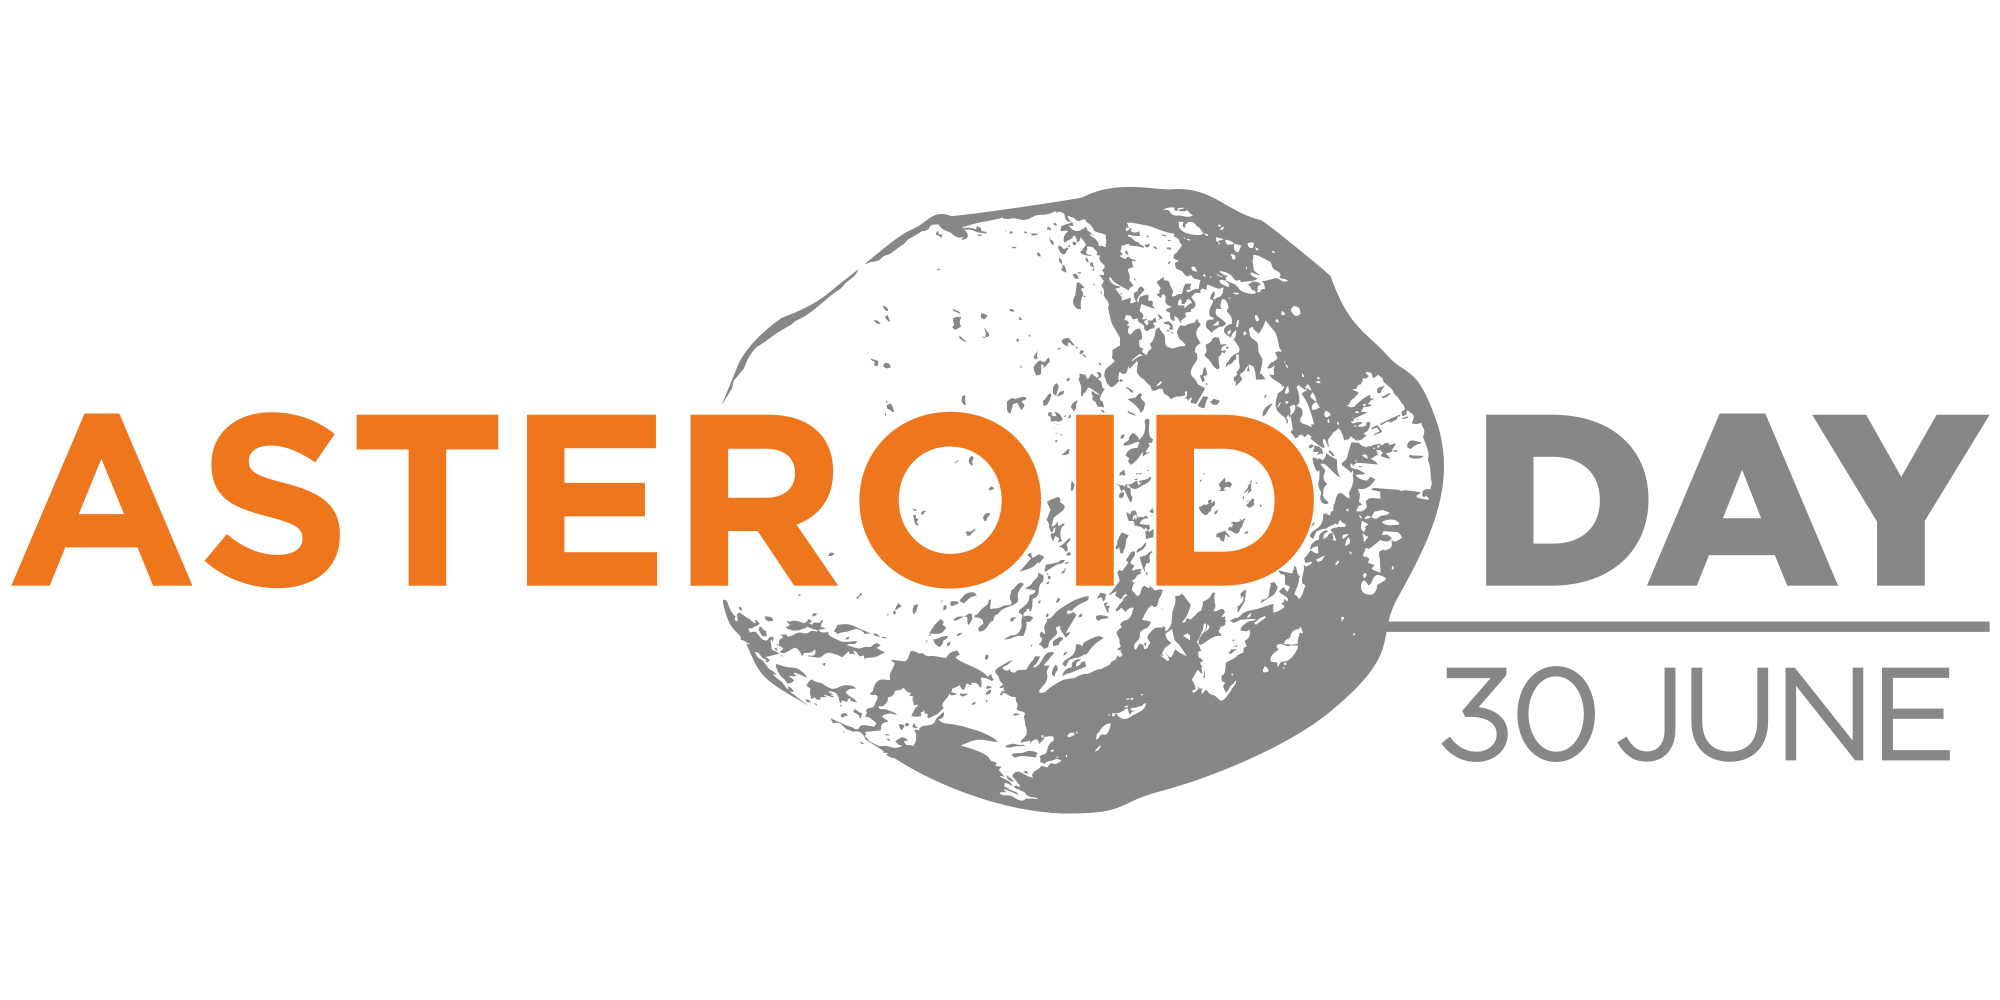 Asteroid Day June 30